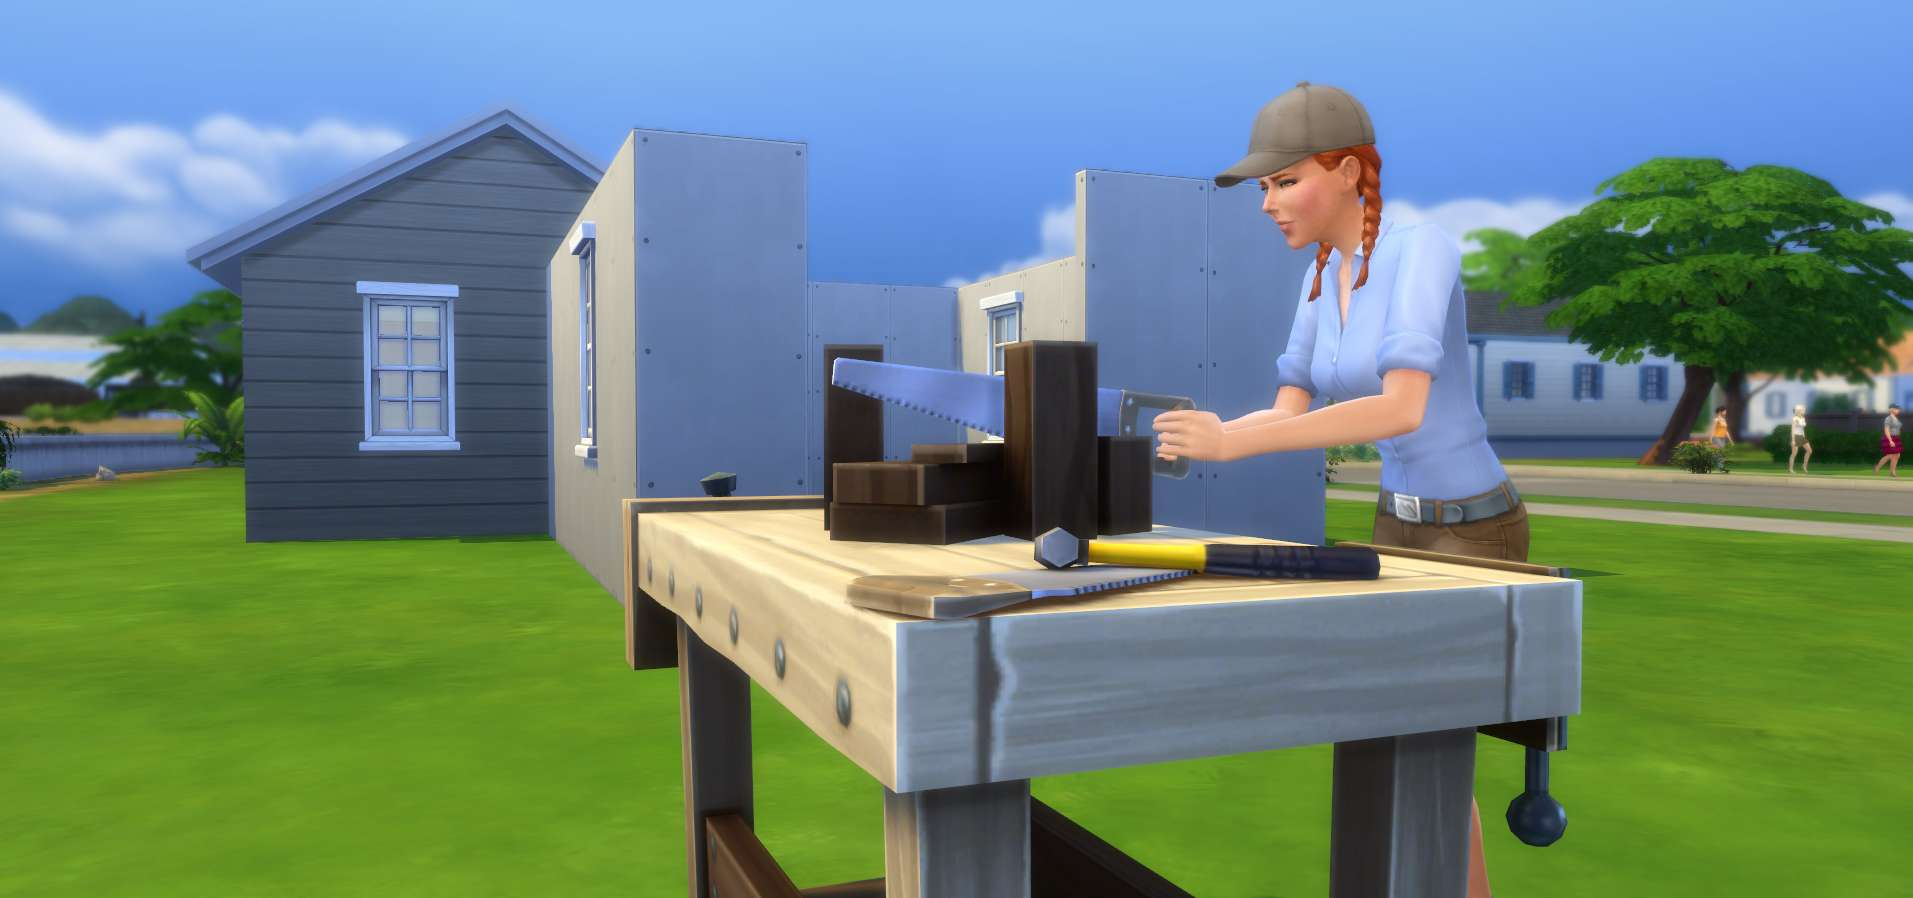 sims 4 build mode tutorials for houses and landscaping